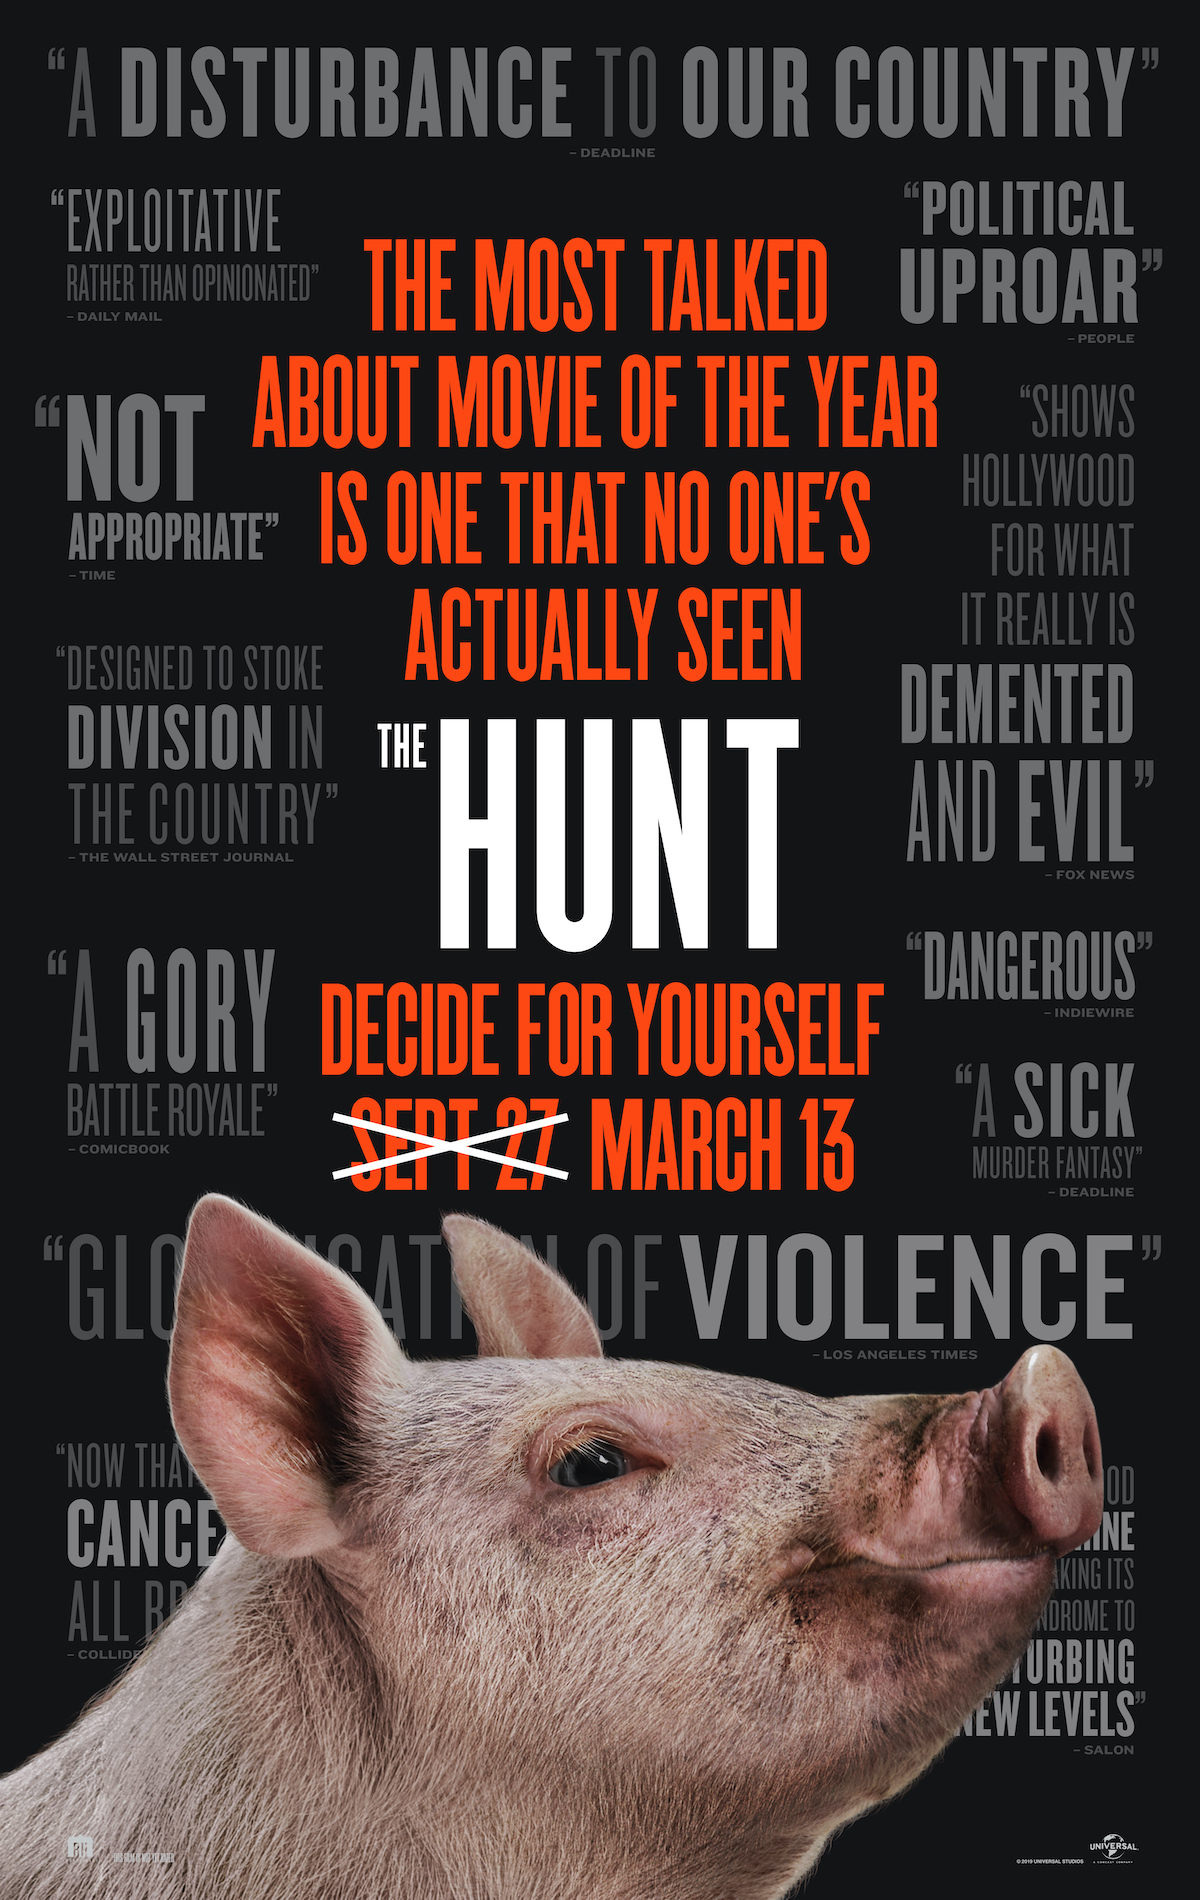 The promotional poster for The Hunt features a large pig and pull quotes.